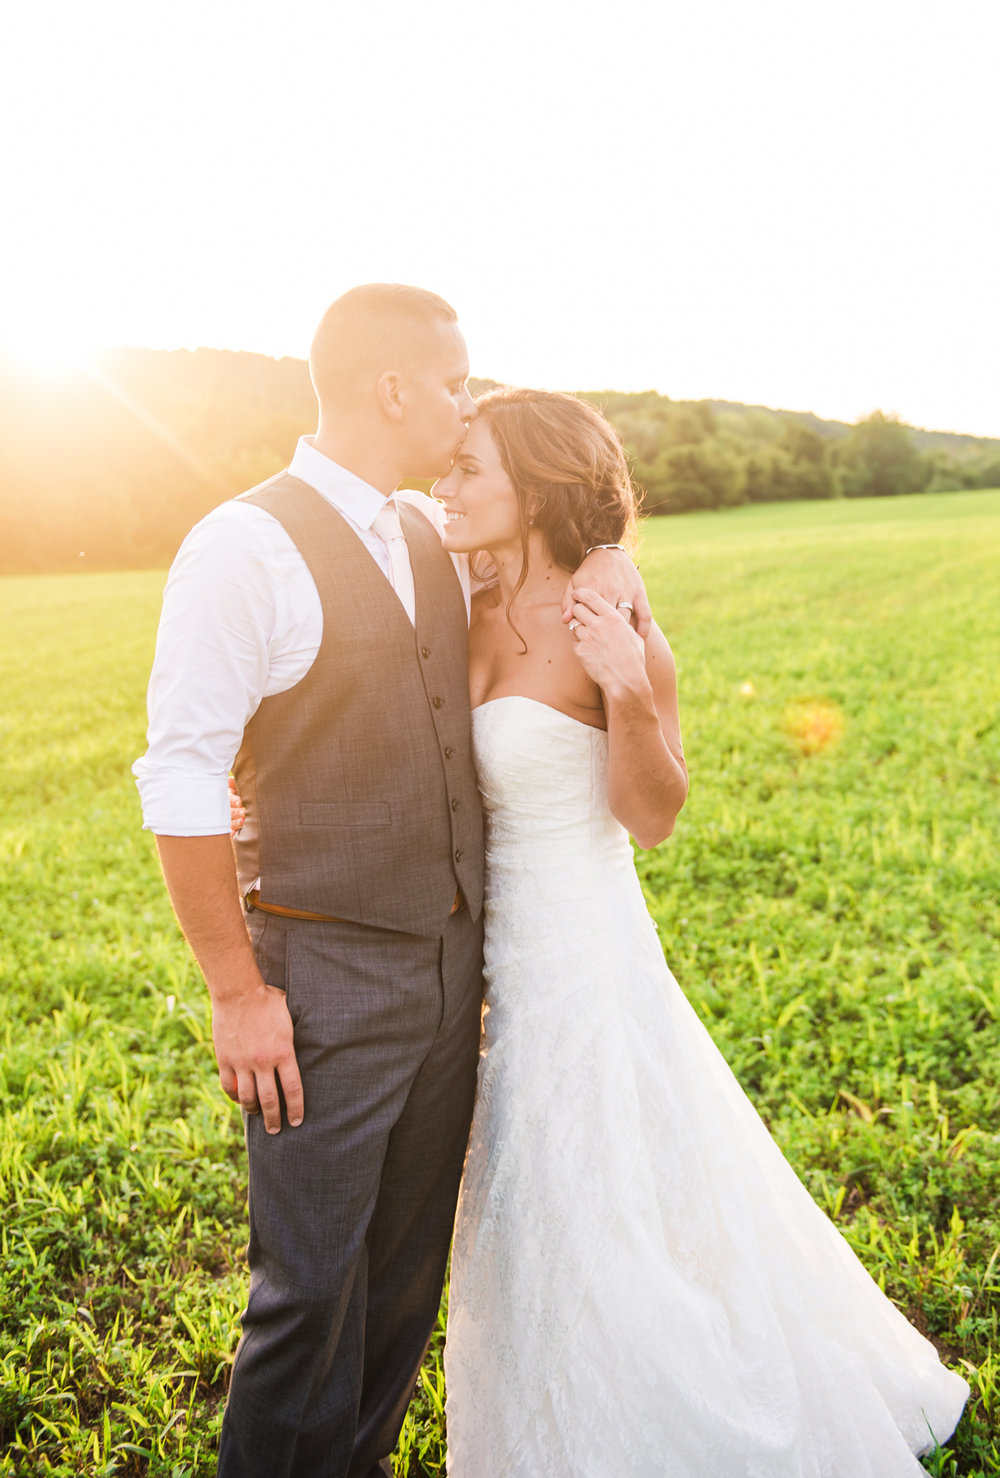 Wolf_Oak_Acres_Central_NY_Wedding_JILL_STUDIO_Rochester_NY_Photographer_DSC_5748.jpg